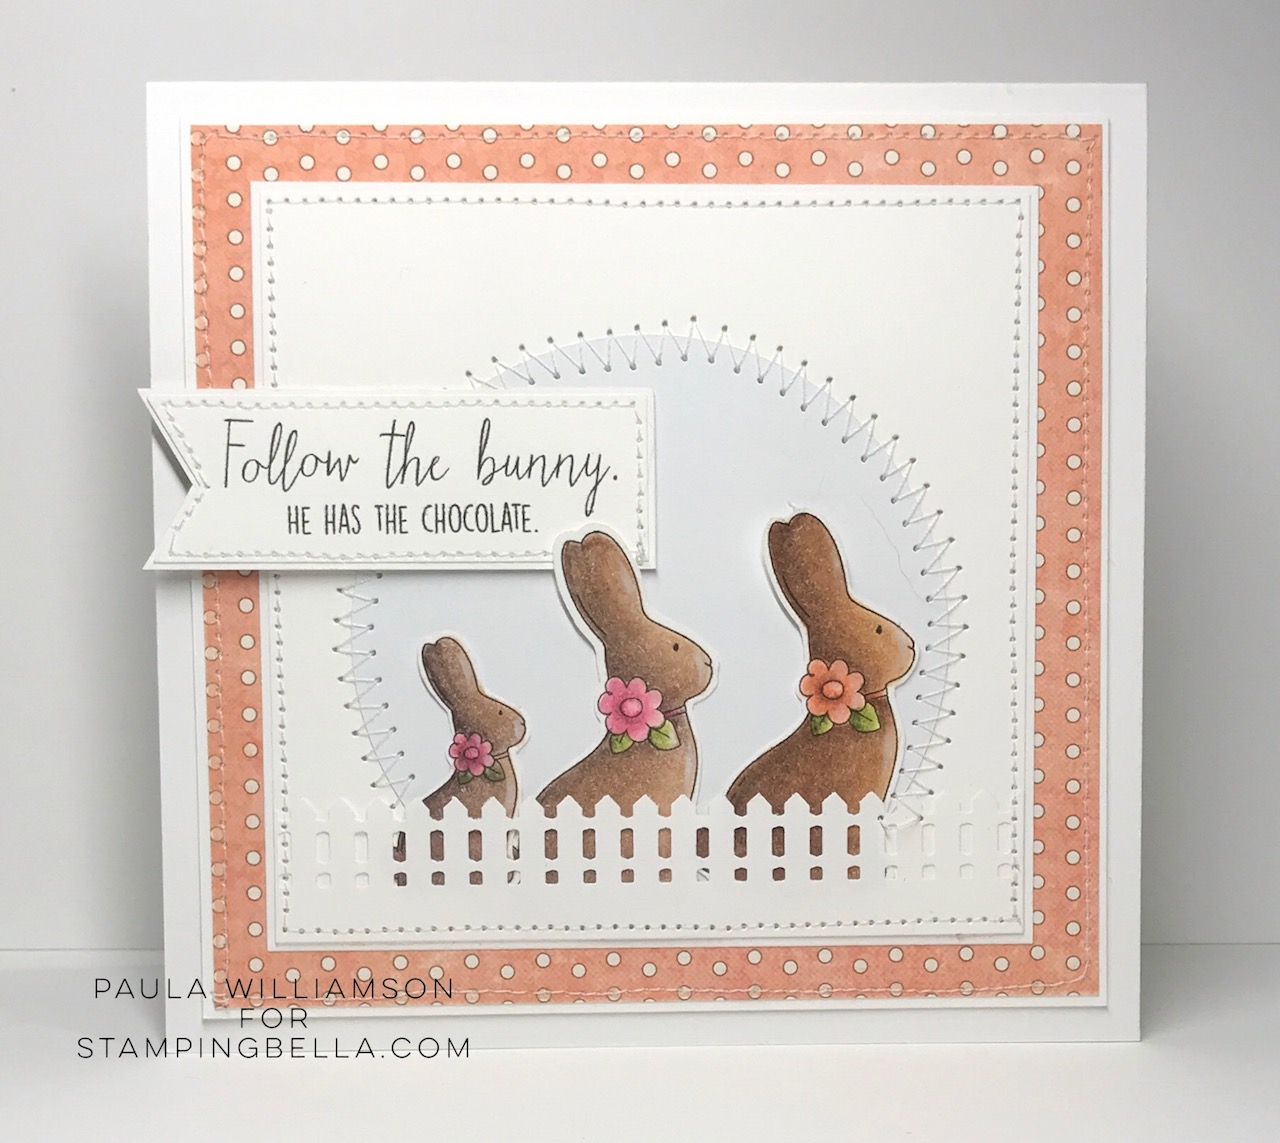 www.stampingbella.com : RUBBER STAMP USED:  CHOCOLATE BUNNIES card by Paula Williamson